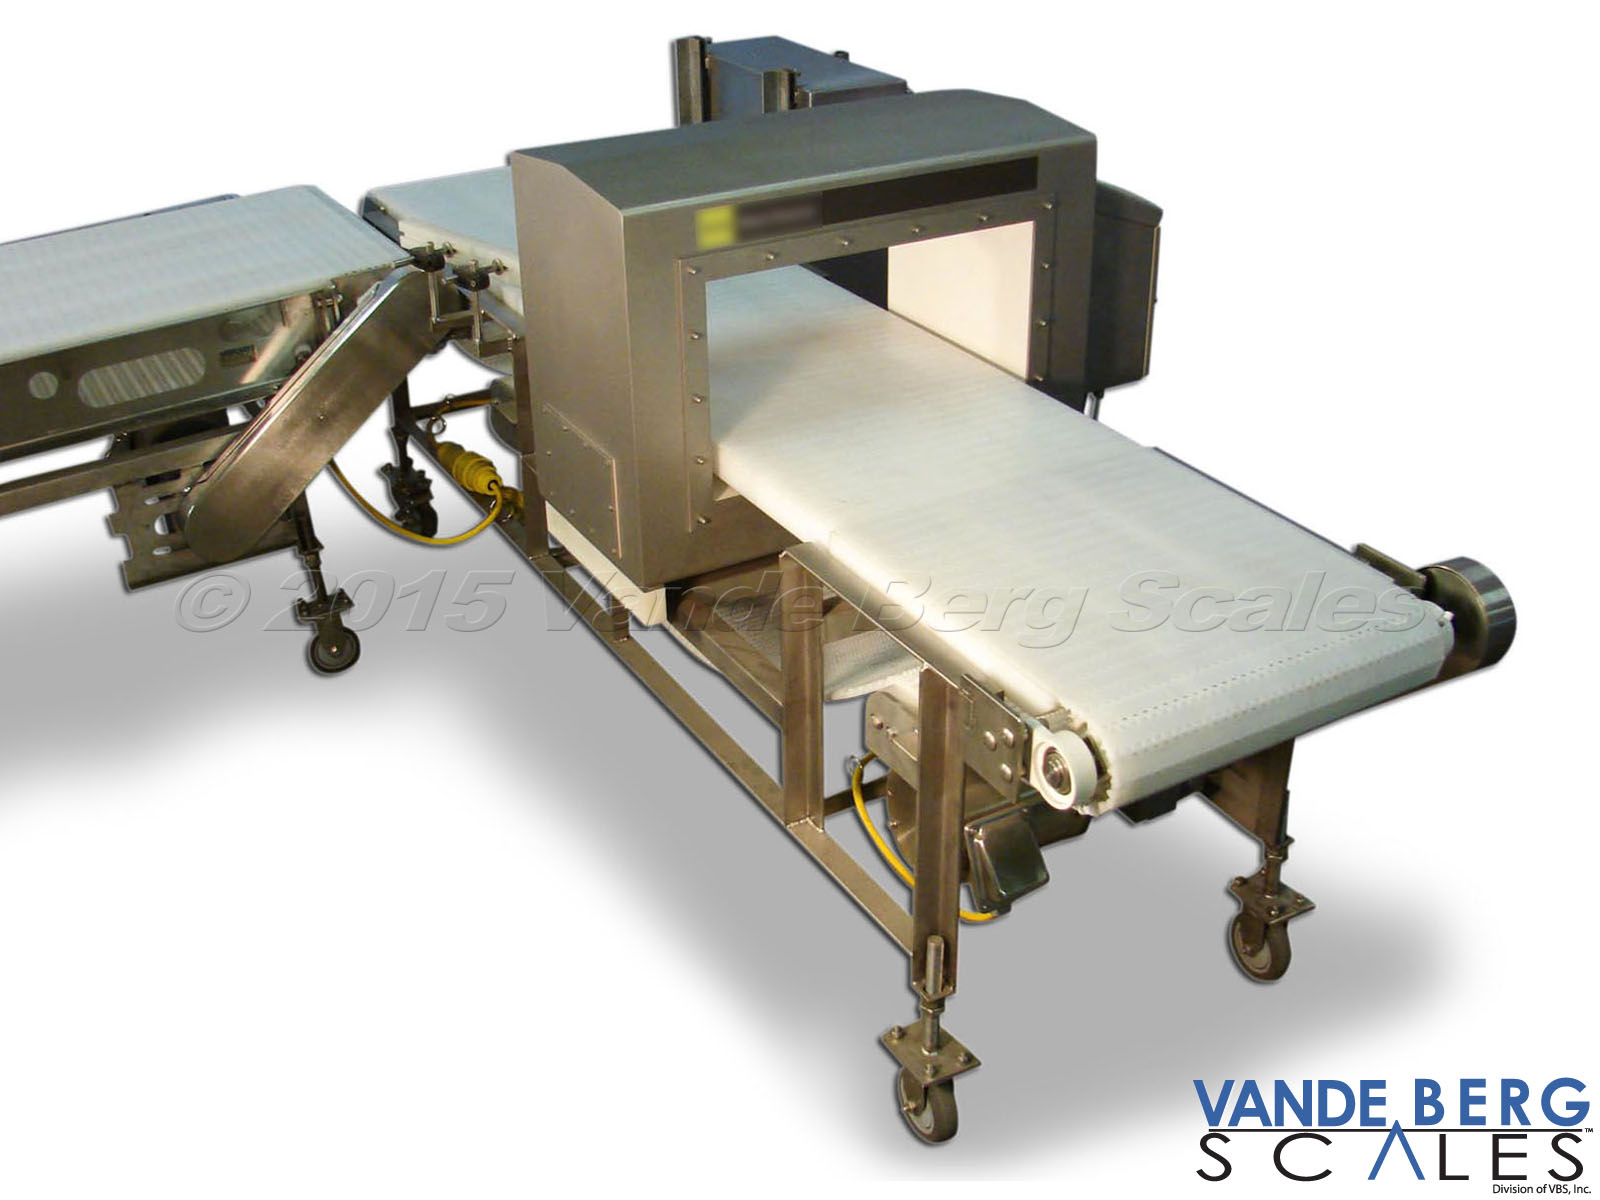 High-profile metal detector with wide conveyor belt - useful for scanning large parcels.